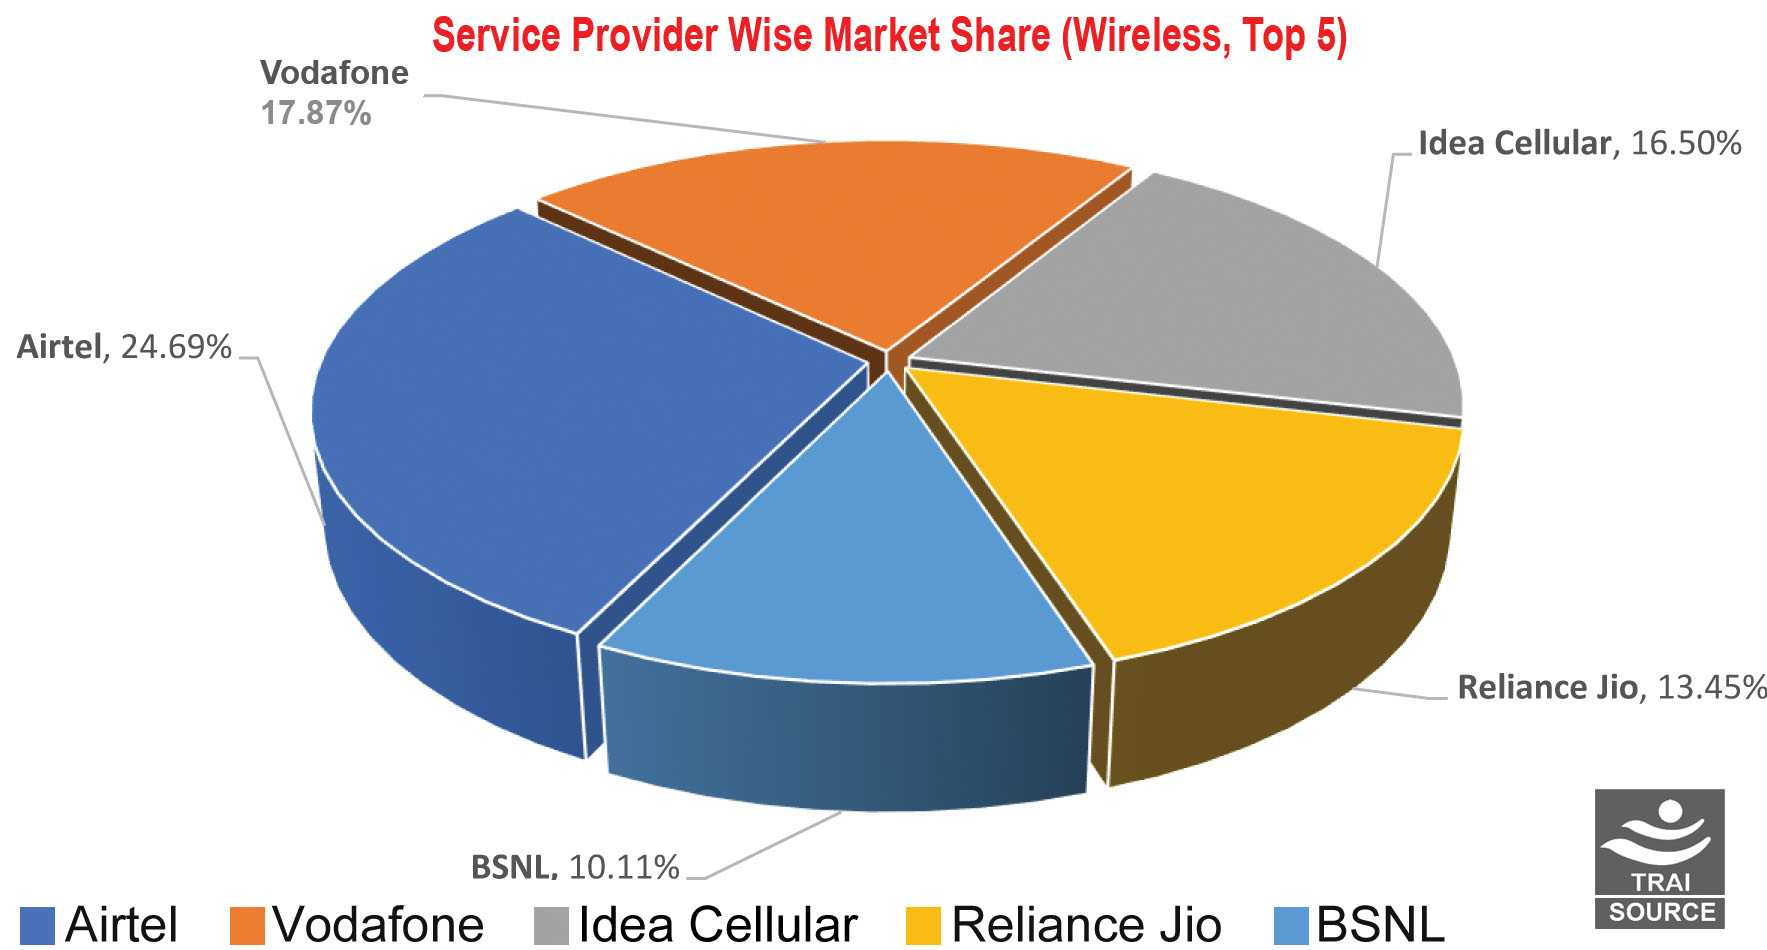 Service Provider Wise market Share (Wireless, Top 5)